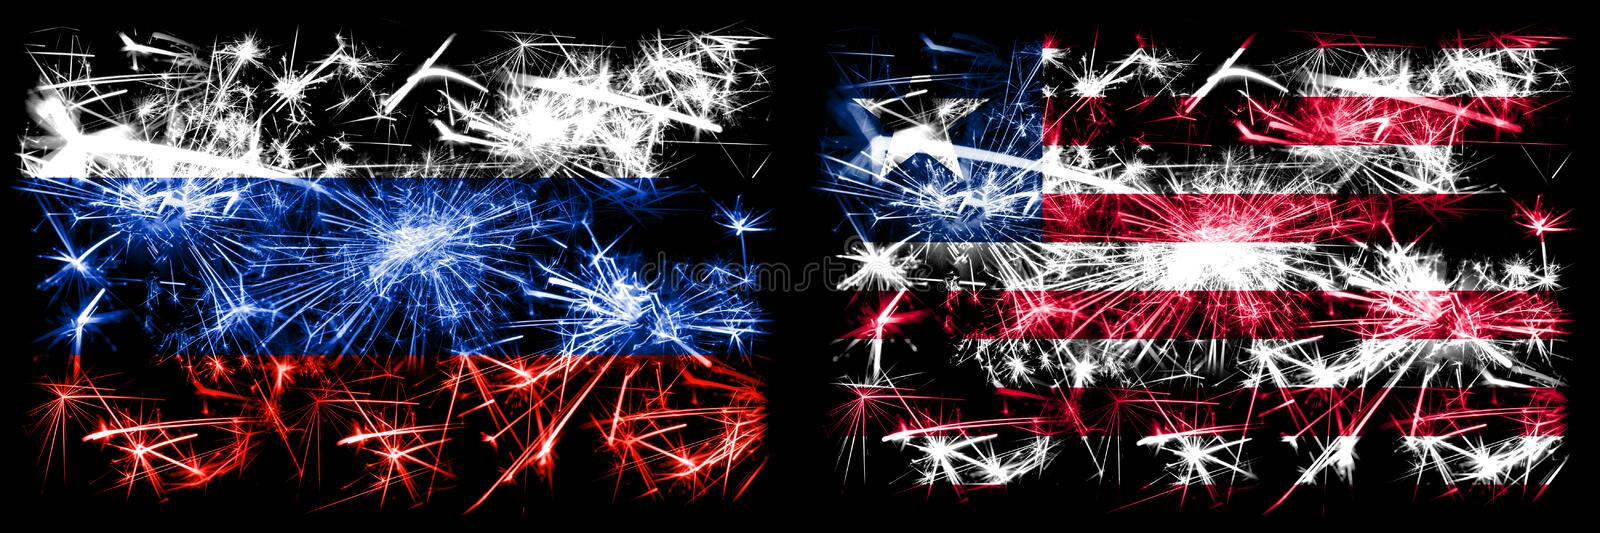 Russia, Russian vs Liberia, Liberian New Year celebration sparkling fireworks flags concept background. Combination of two states. Flags royalty free illustration